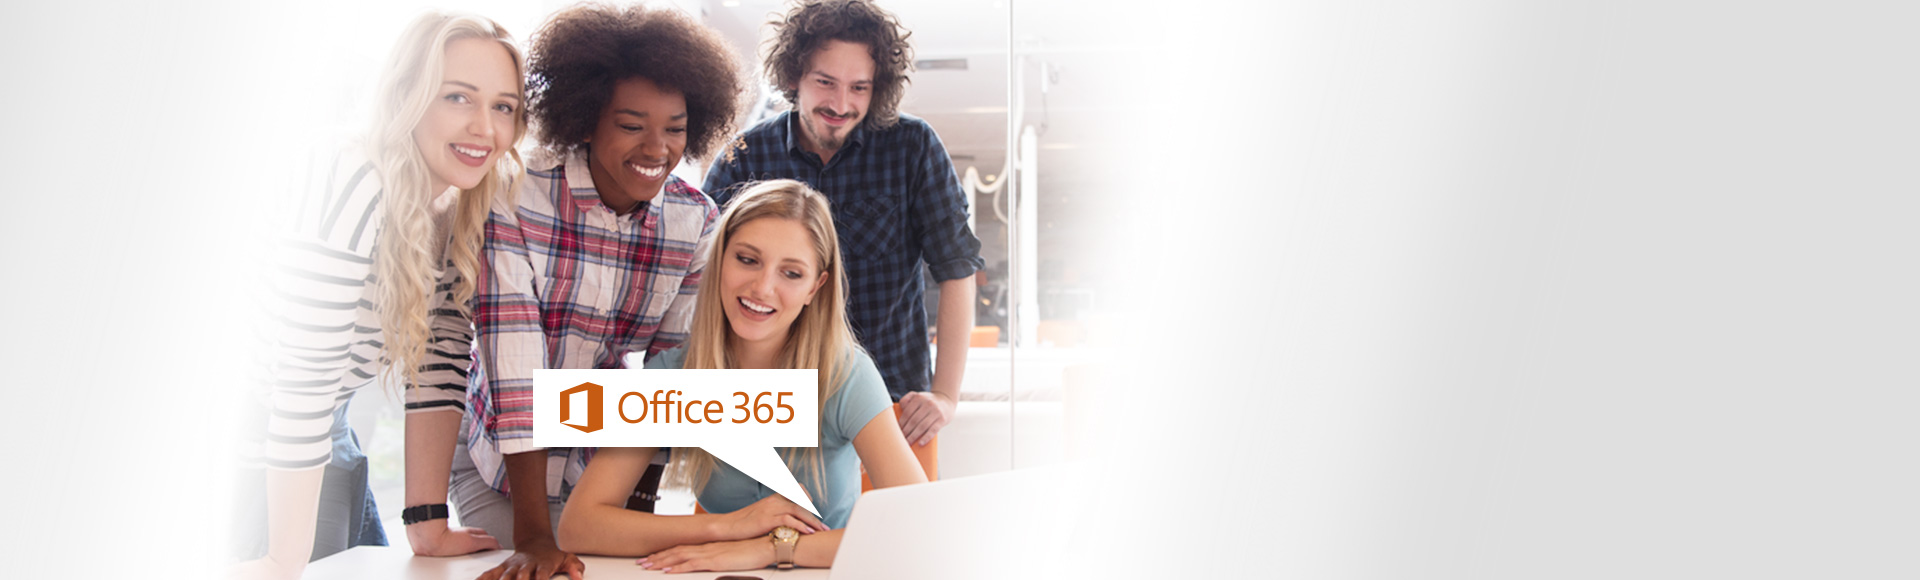 signetique office 365 promotion